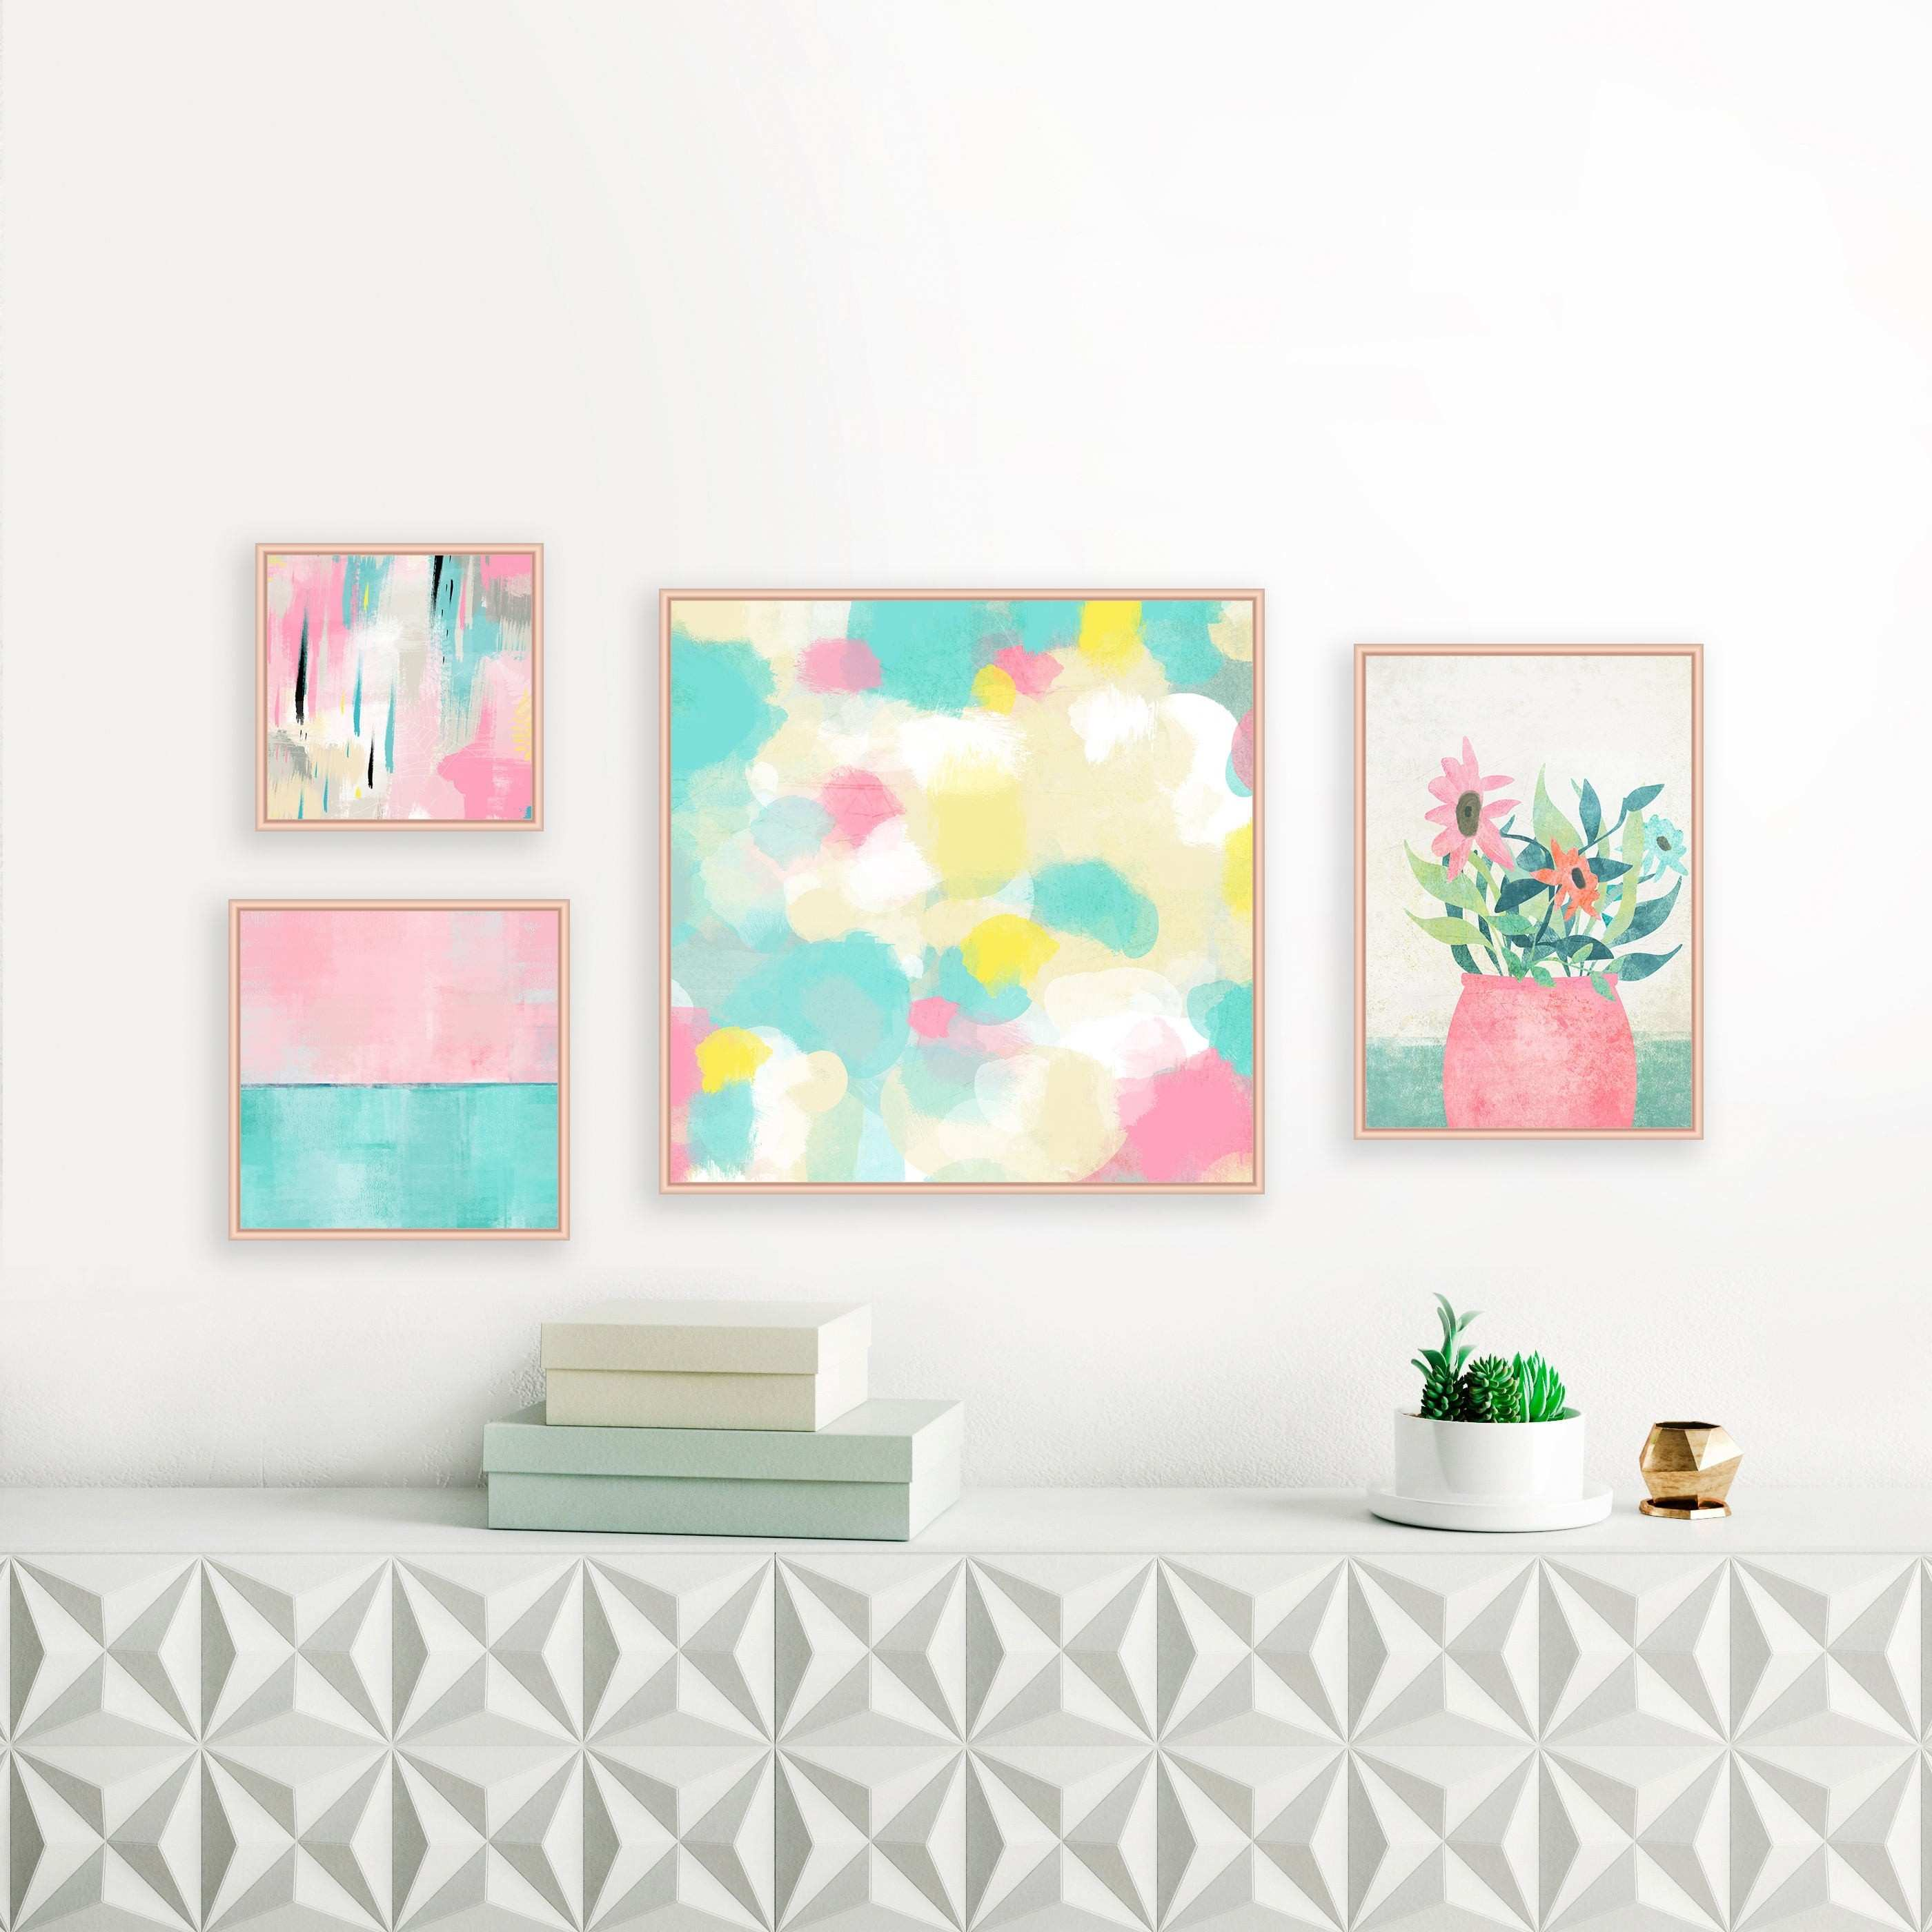 15 Best Collection of Pastel Abstract Wall Art